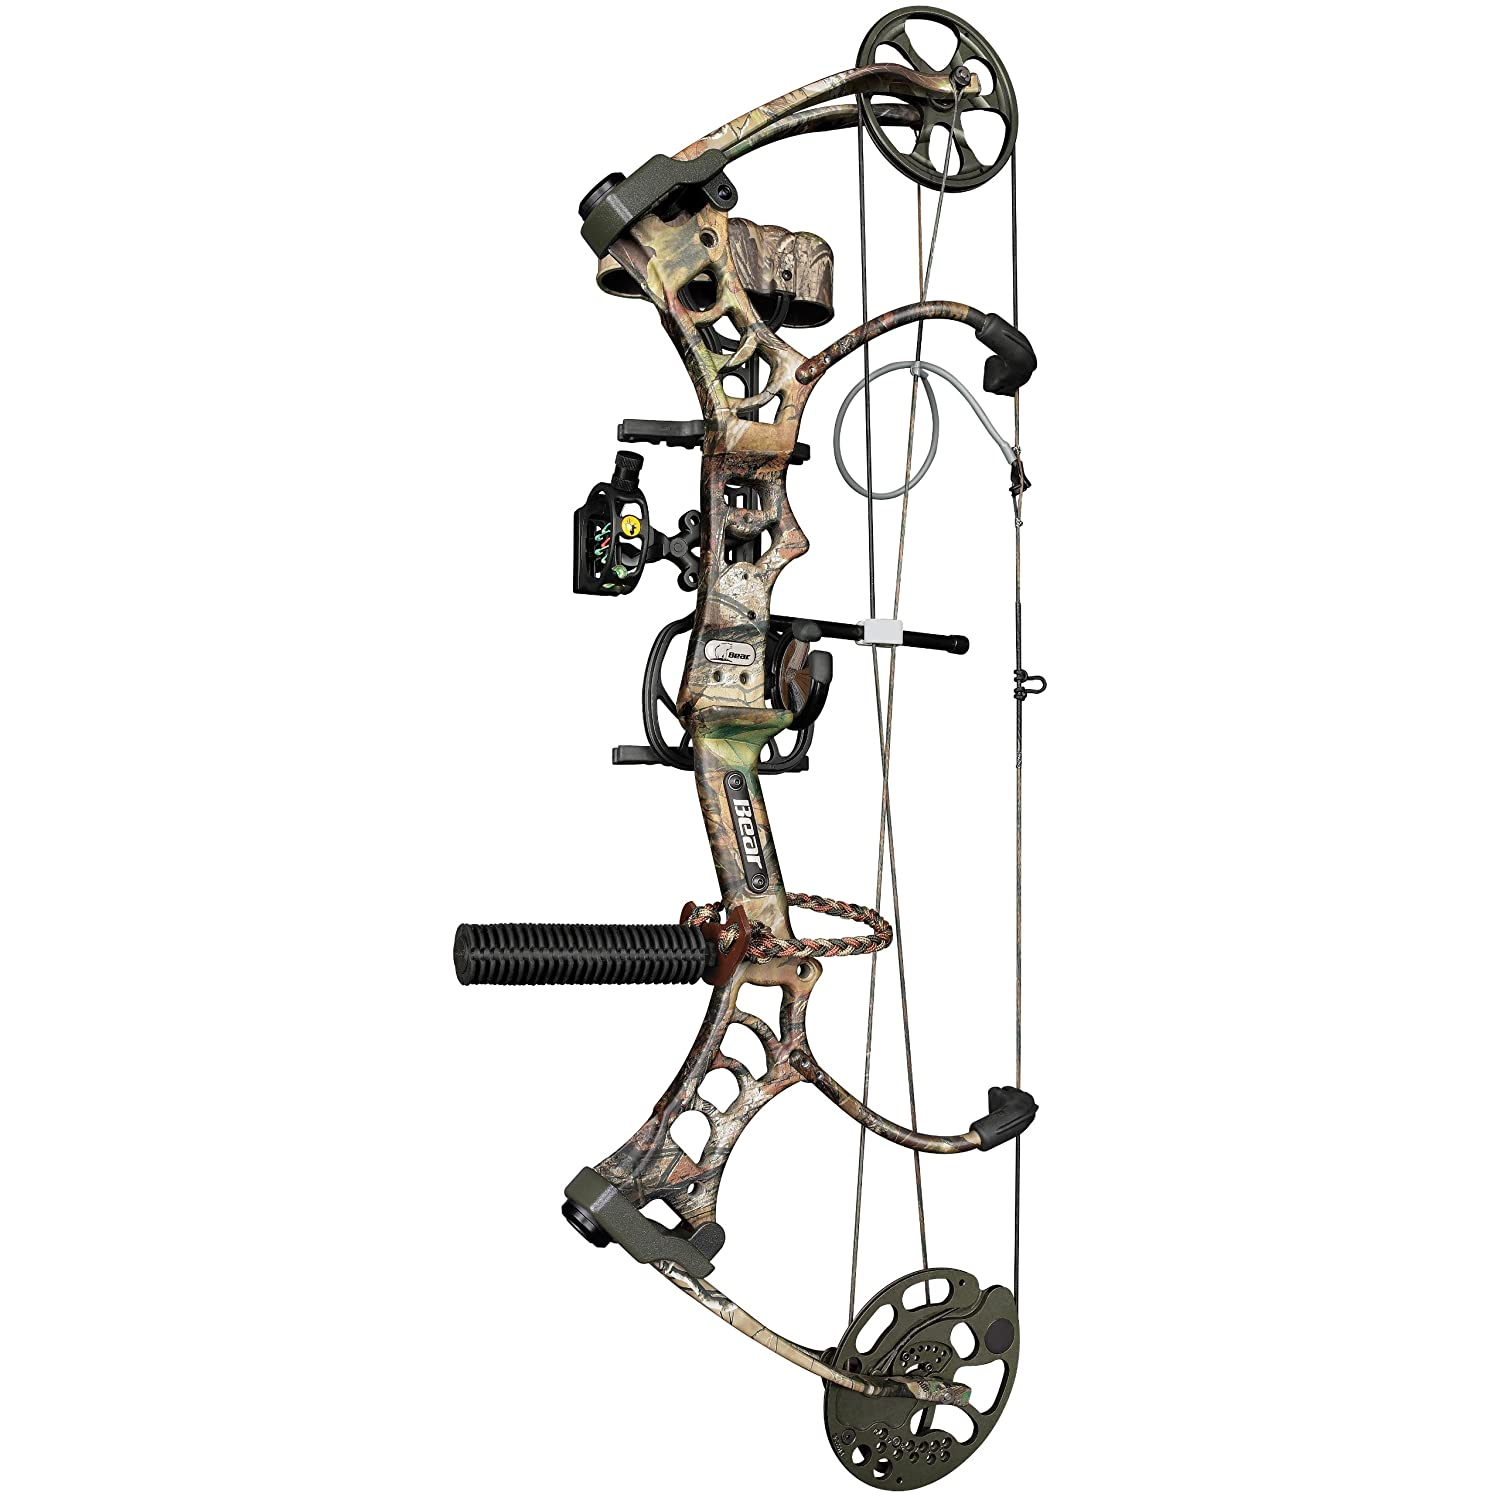 81IP3DWk4wL. SL1500  What is the Best Compound Bow to buy? Here is the Best Guide